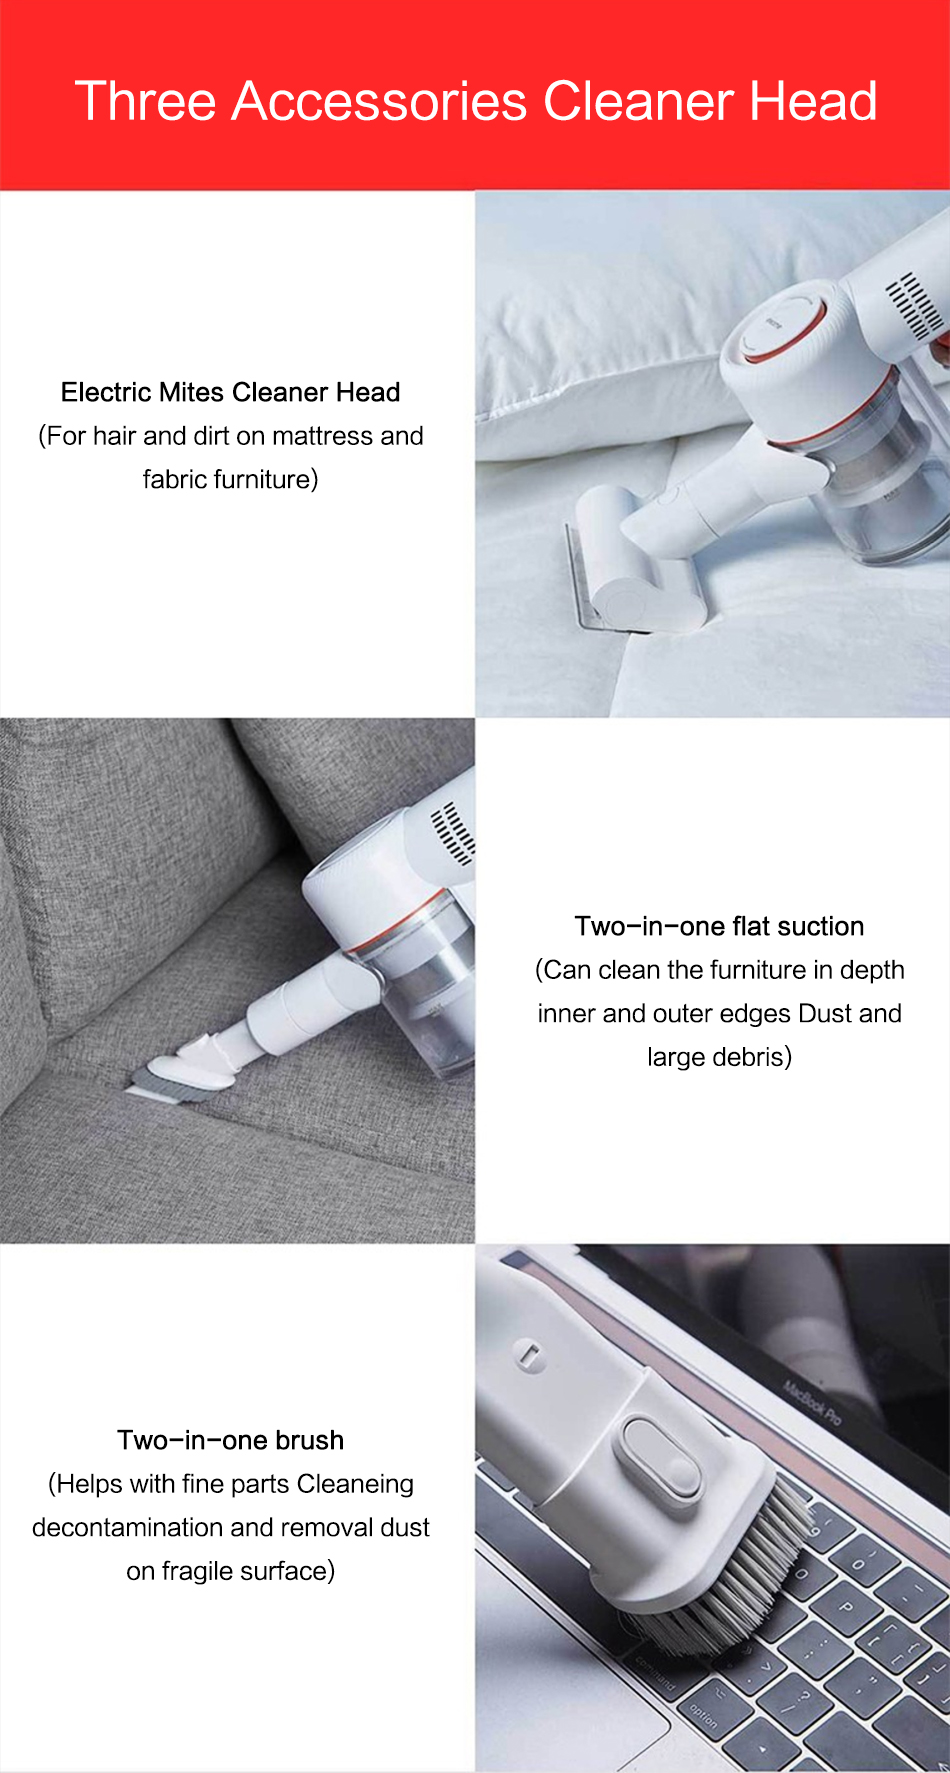 Handheld Cordless Electric Stick Vacuum Cleaner Portable Wireless Cyclone Filter 115AW Strong Suction Carpet Dust Collector